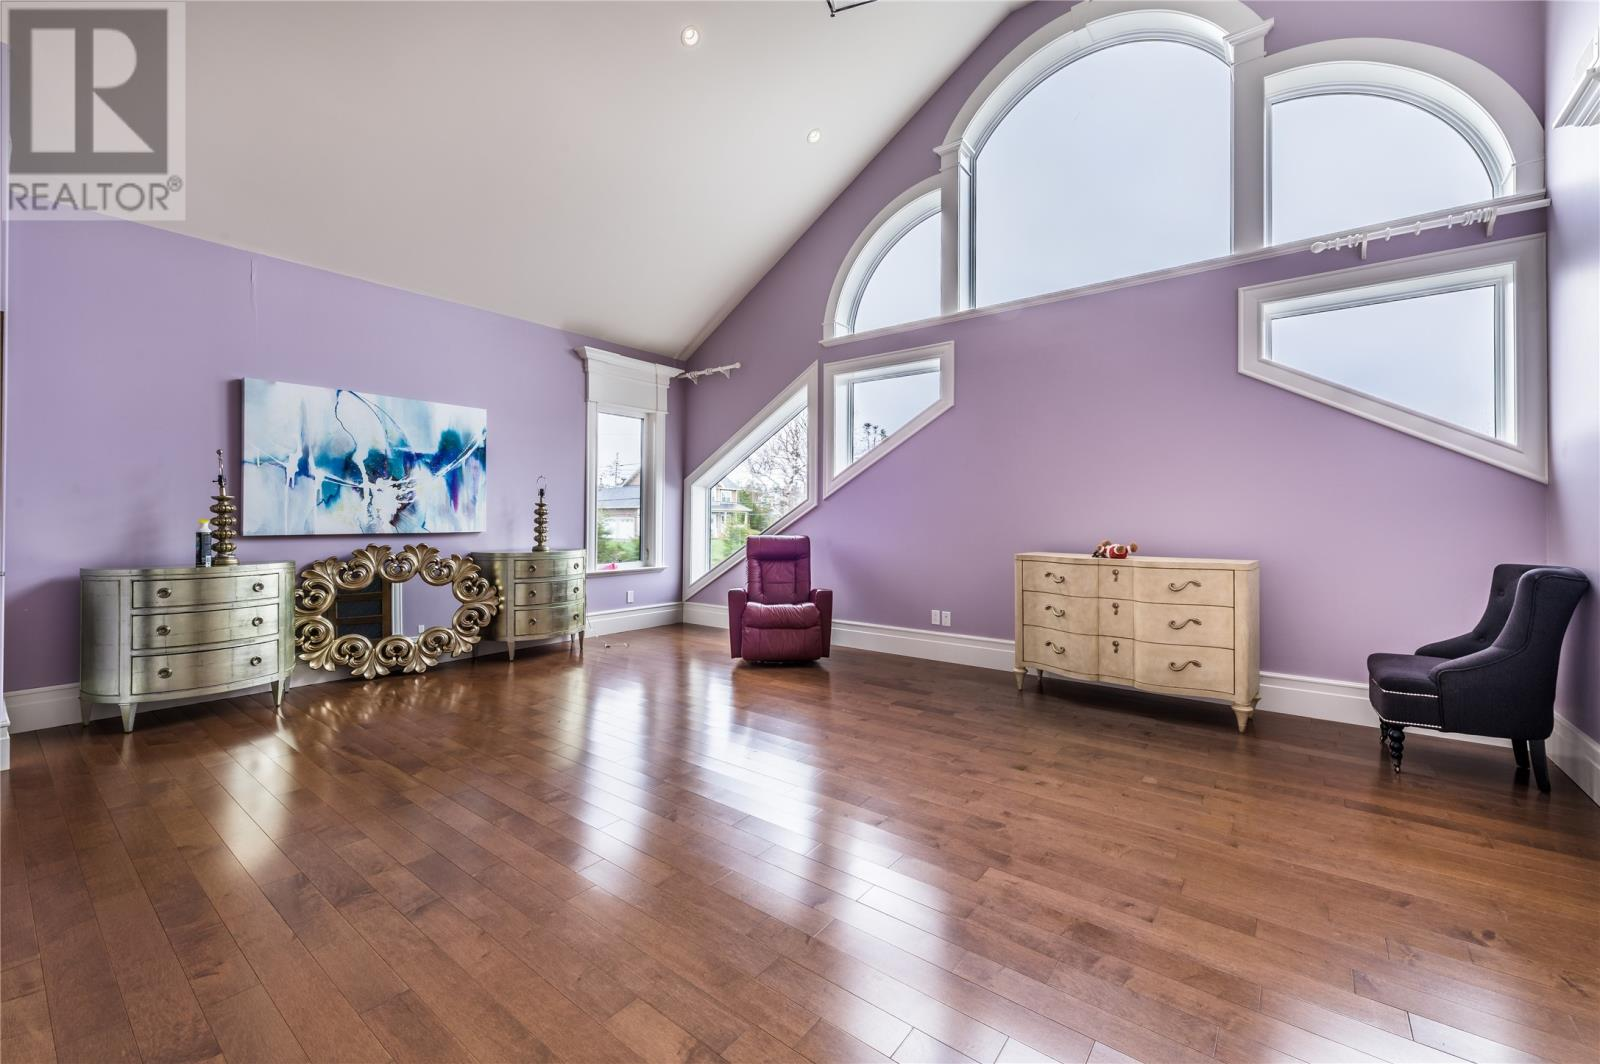 293 Buckingham Drive, Paradise, A1L2G3, 5 Bedrooms Bedrooms, ,6 BathroomsBathrooms,Single Family,For sale,Buckingham,1237367